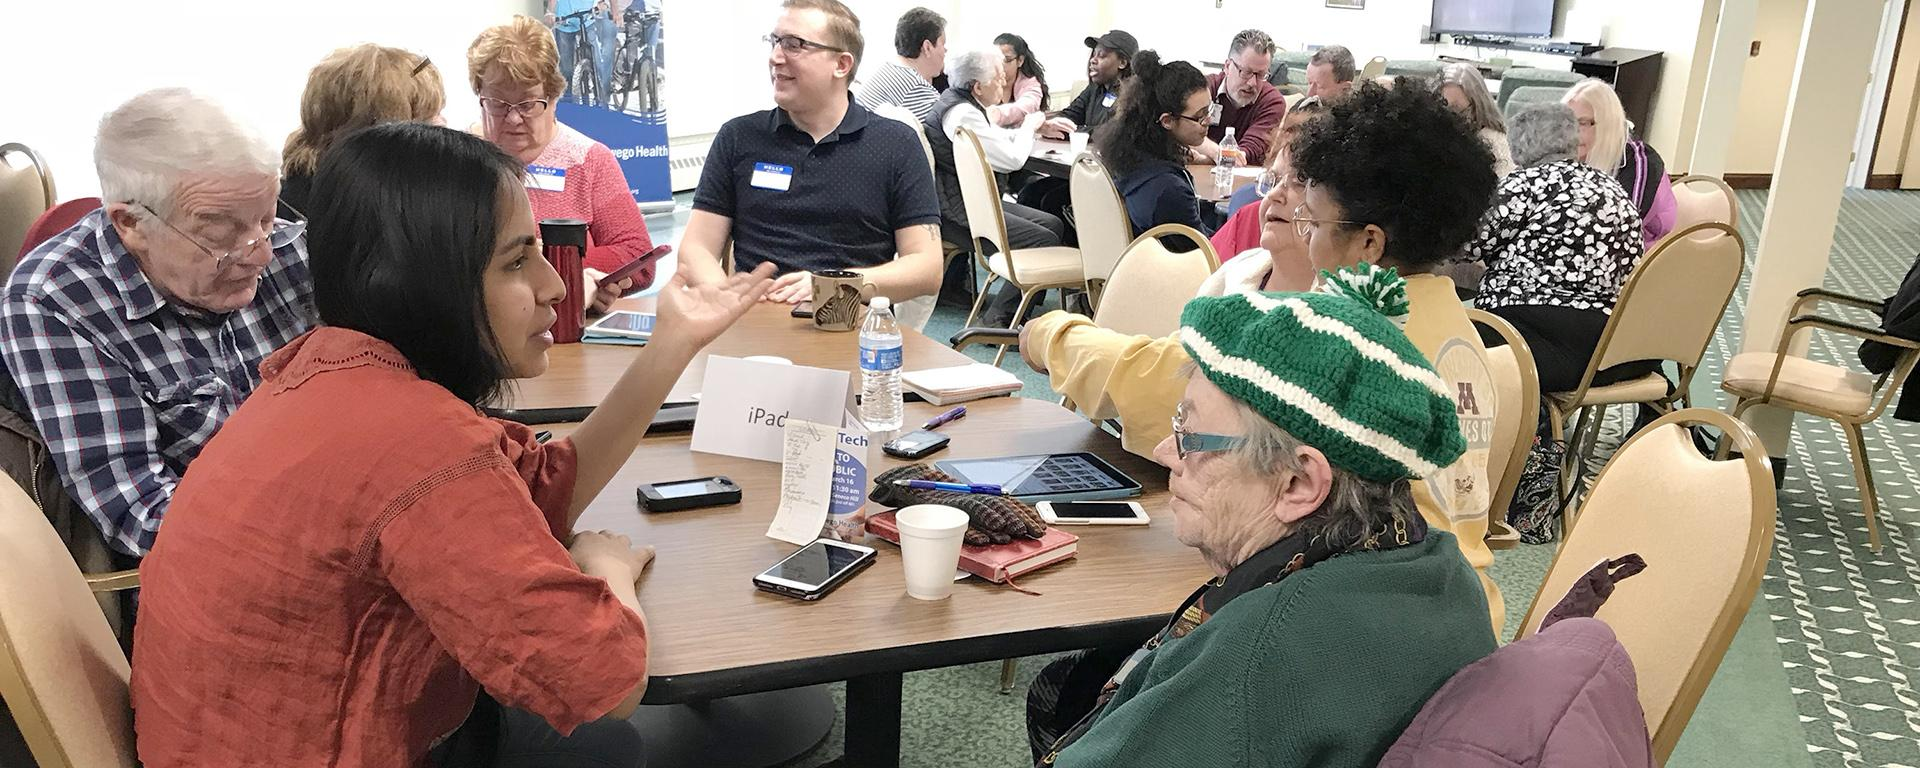 Oswego students helps local senior citizens with technology